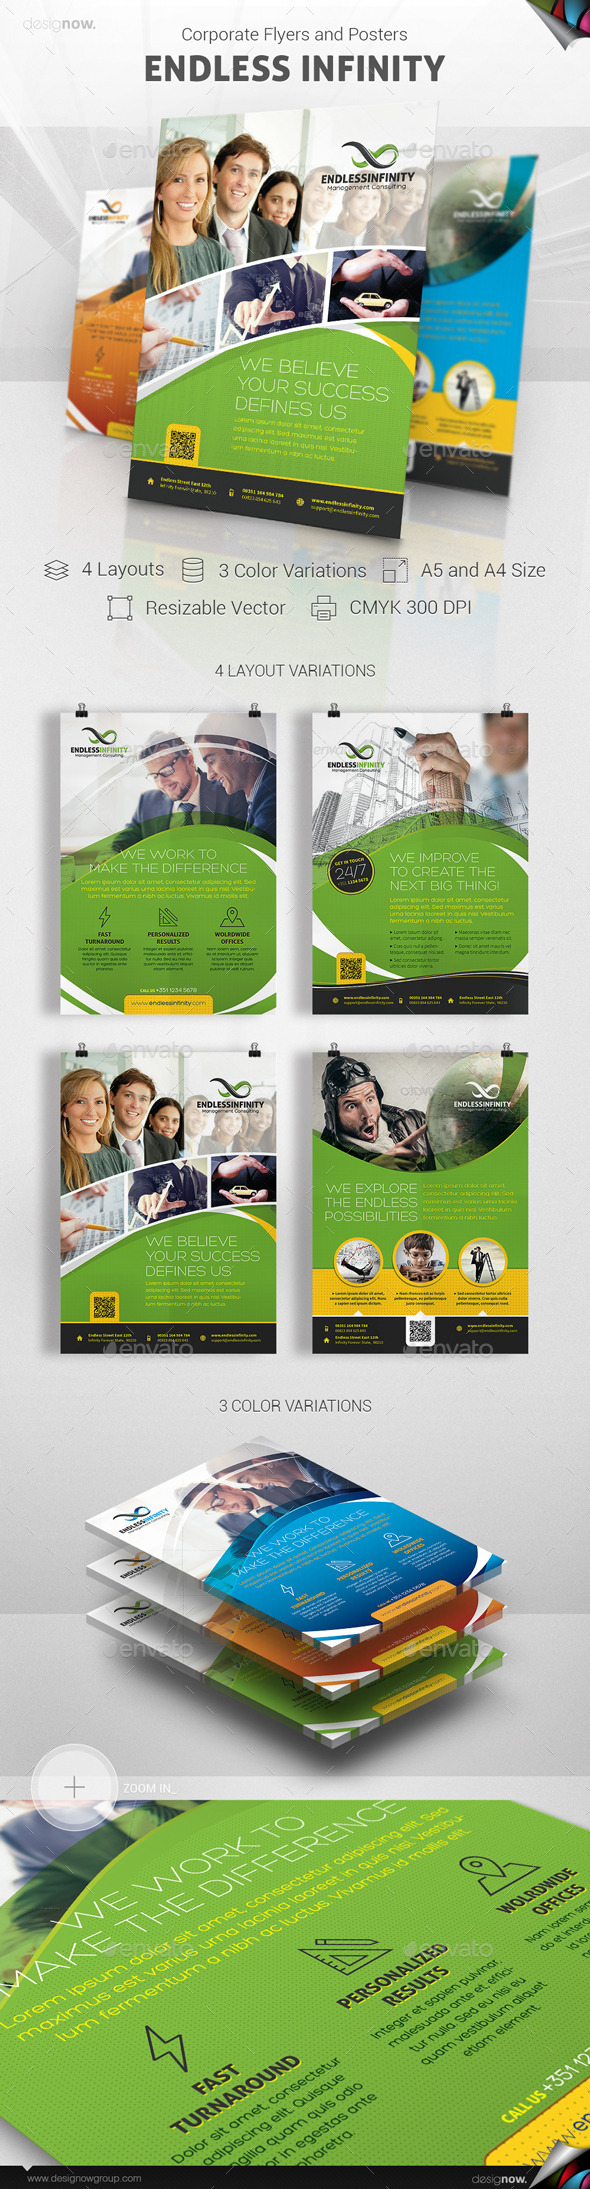 Flyer and Poster - Endless Infinity - Corporate Flyers